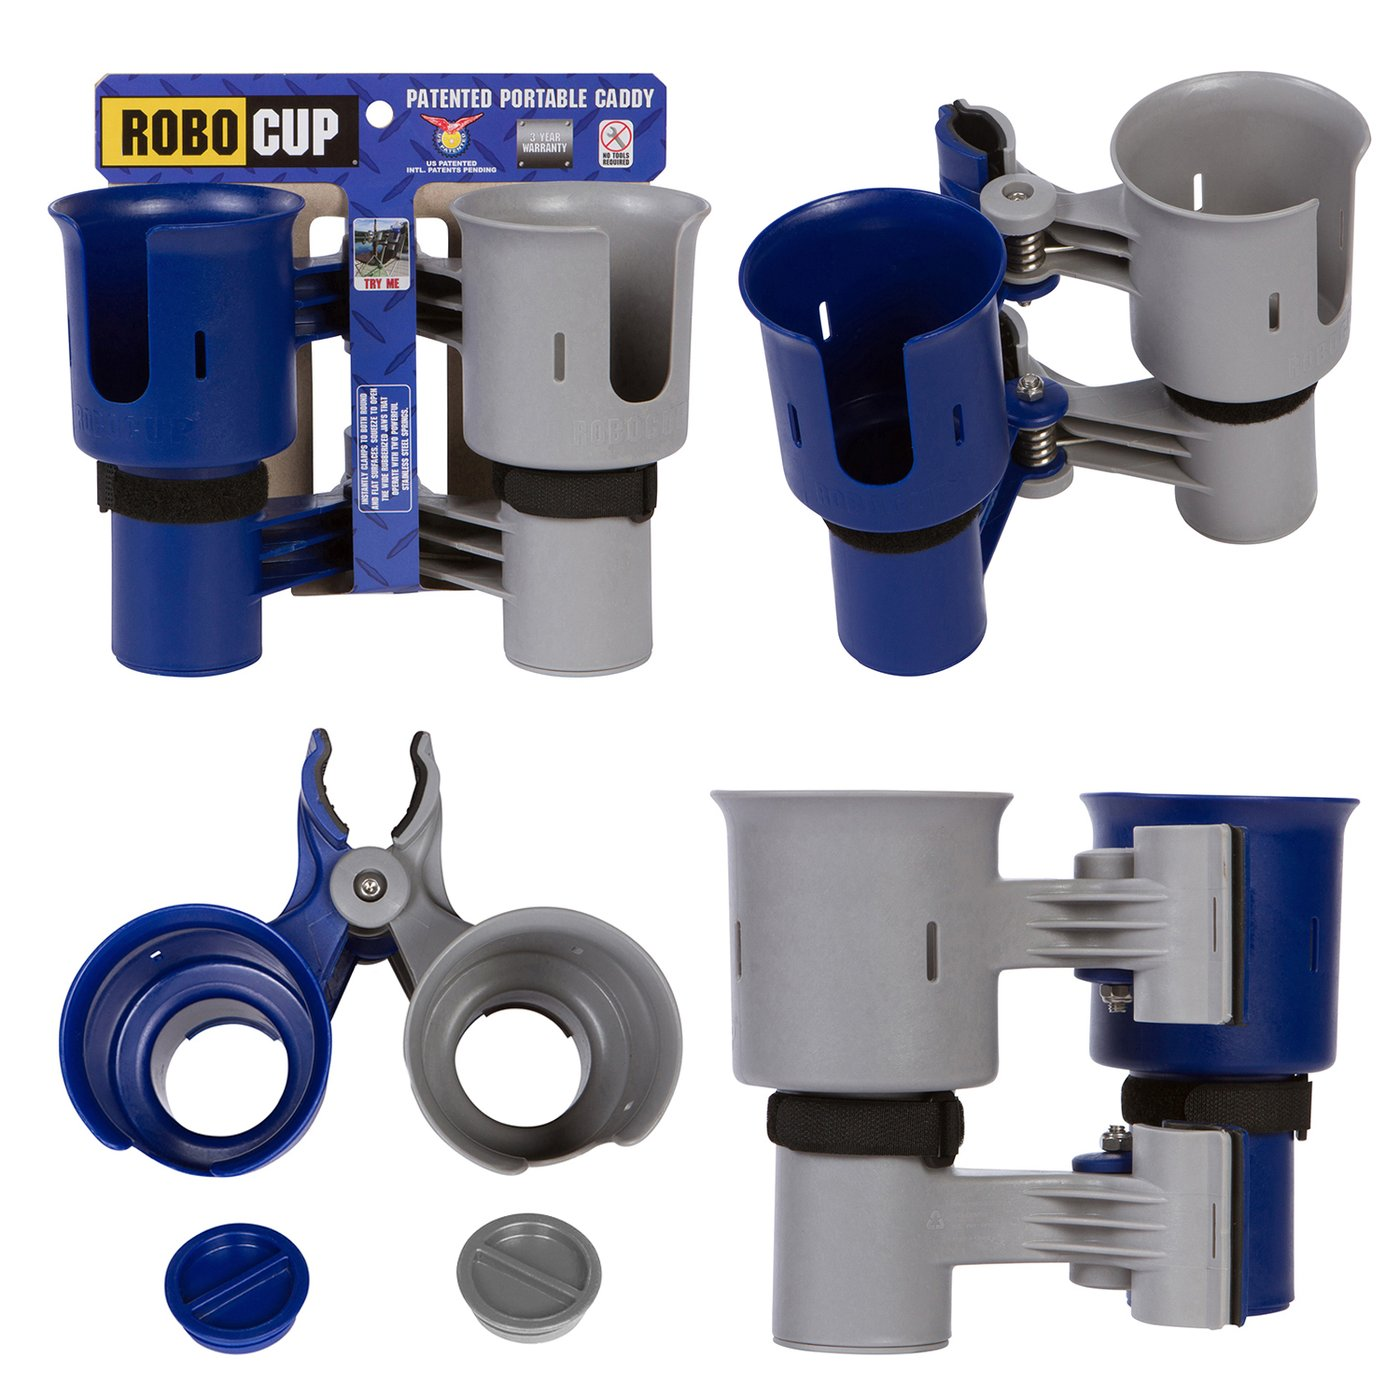 RoboCup: Navy and Grey